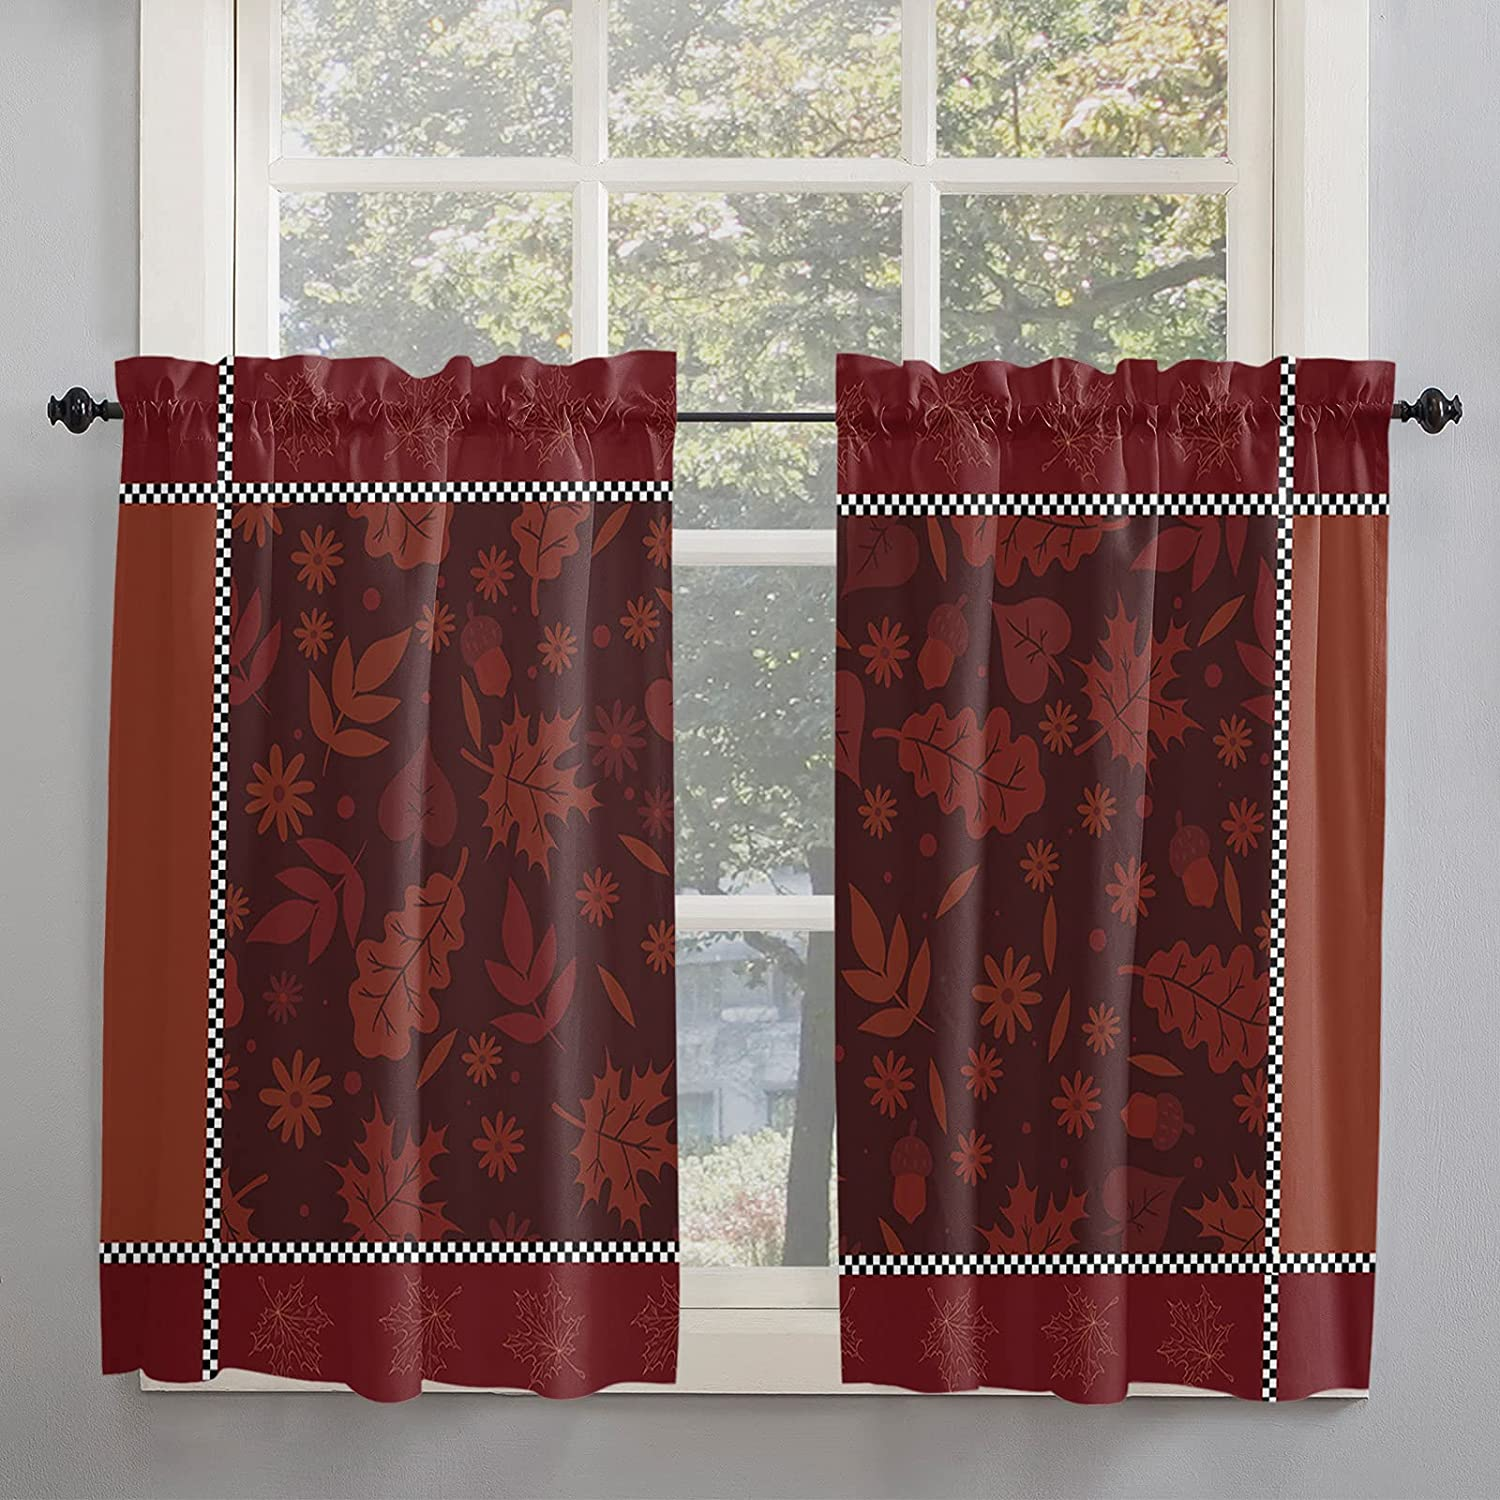 Fall Thanksgiving Day Kitchen Curtains 45 Length Same day shipping for Inch Window Max 69% OFF